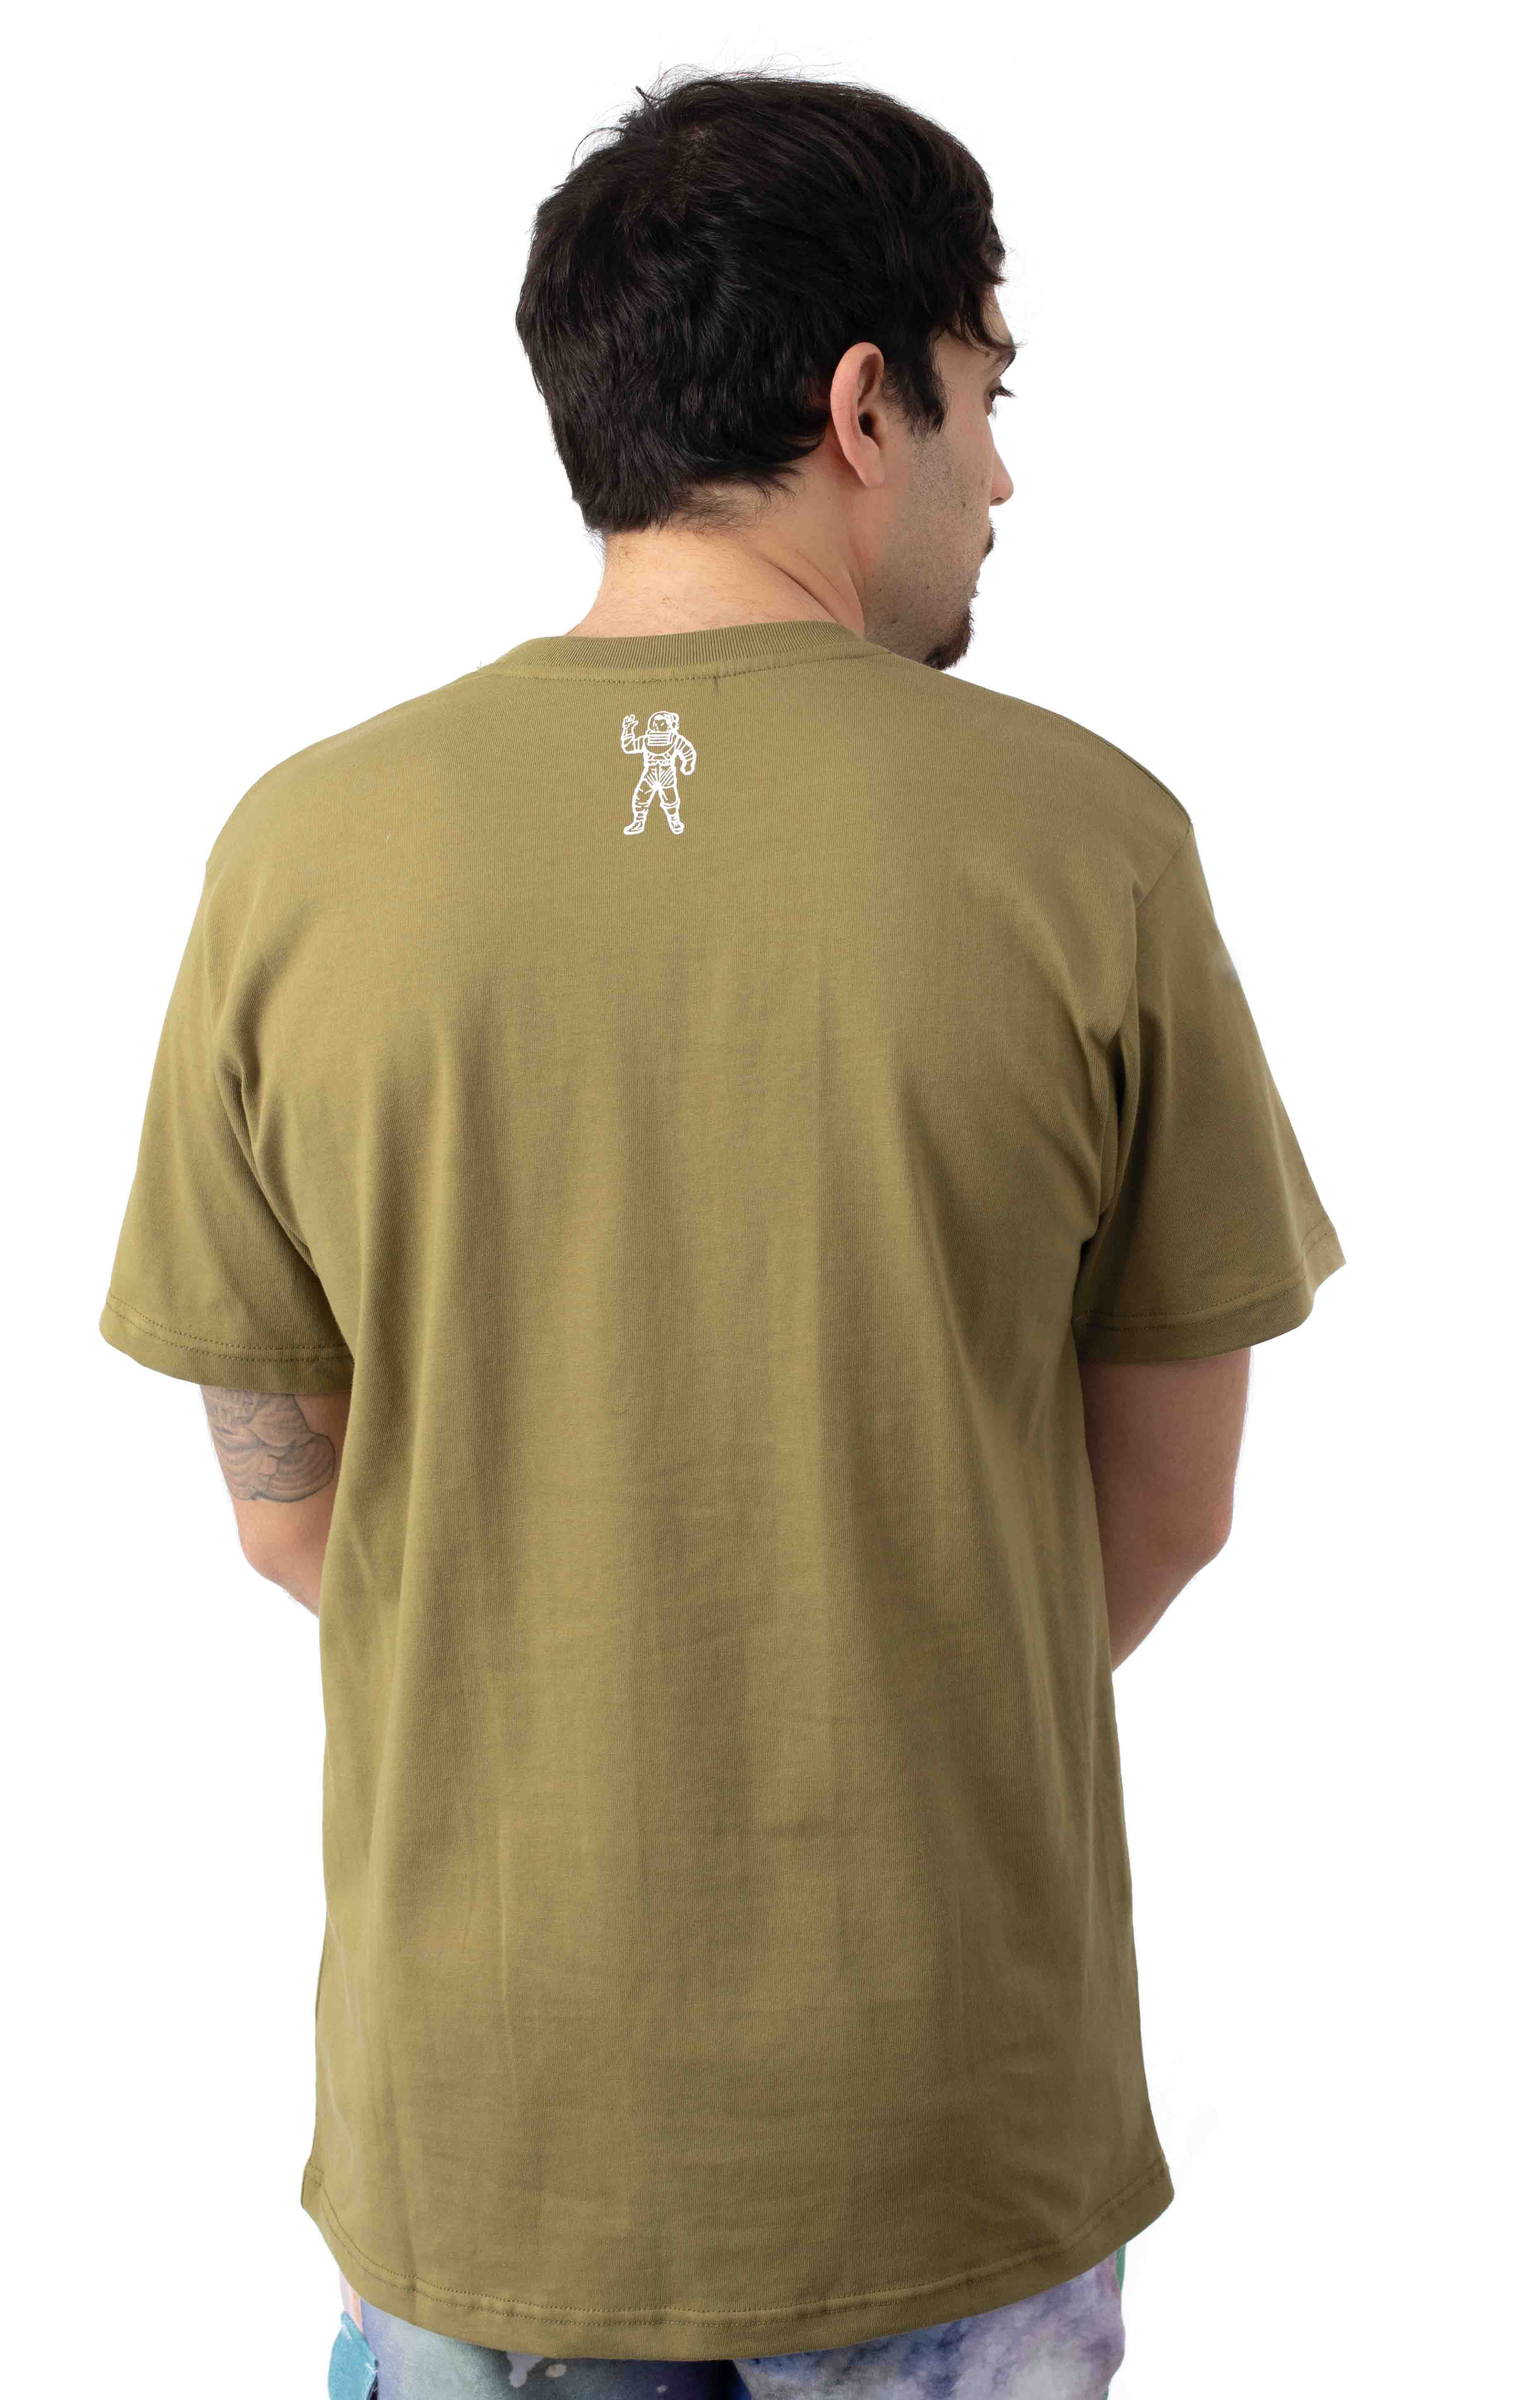 BB Watercolor T-Shirt - Olive Drab 3